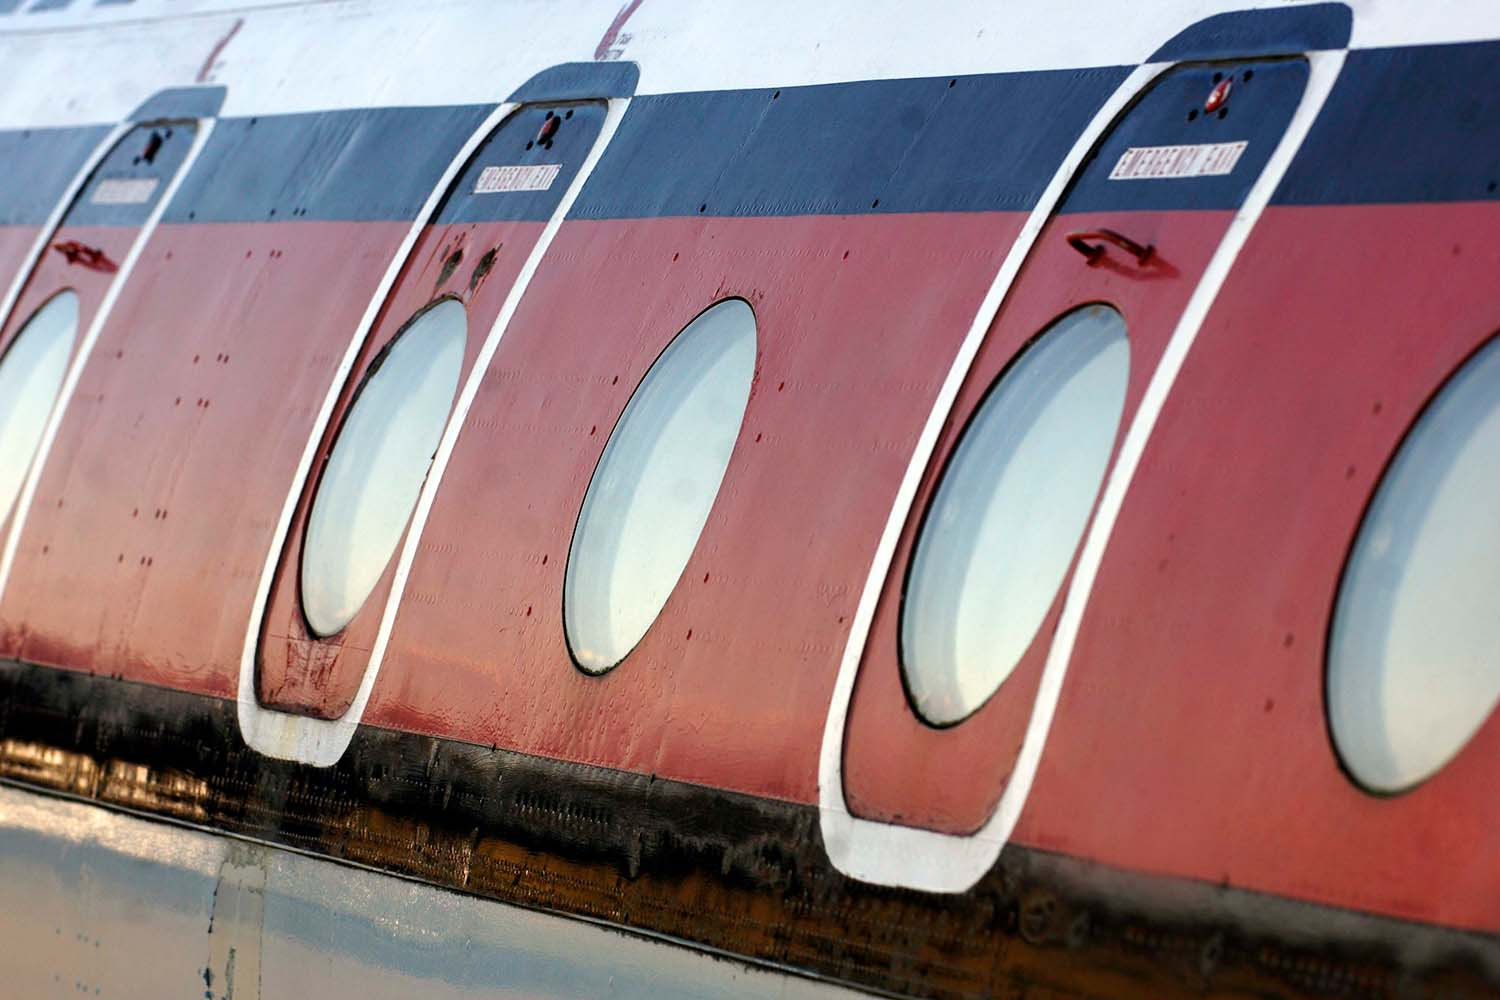 Round windows on the Comet 4C at East Fortune Airfield.